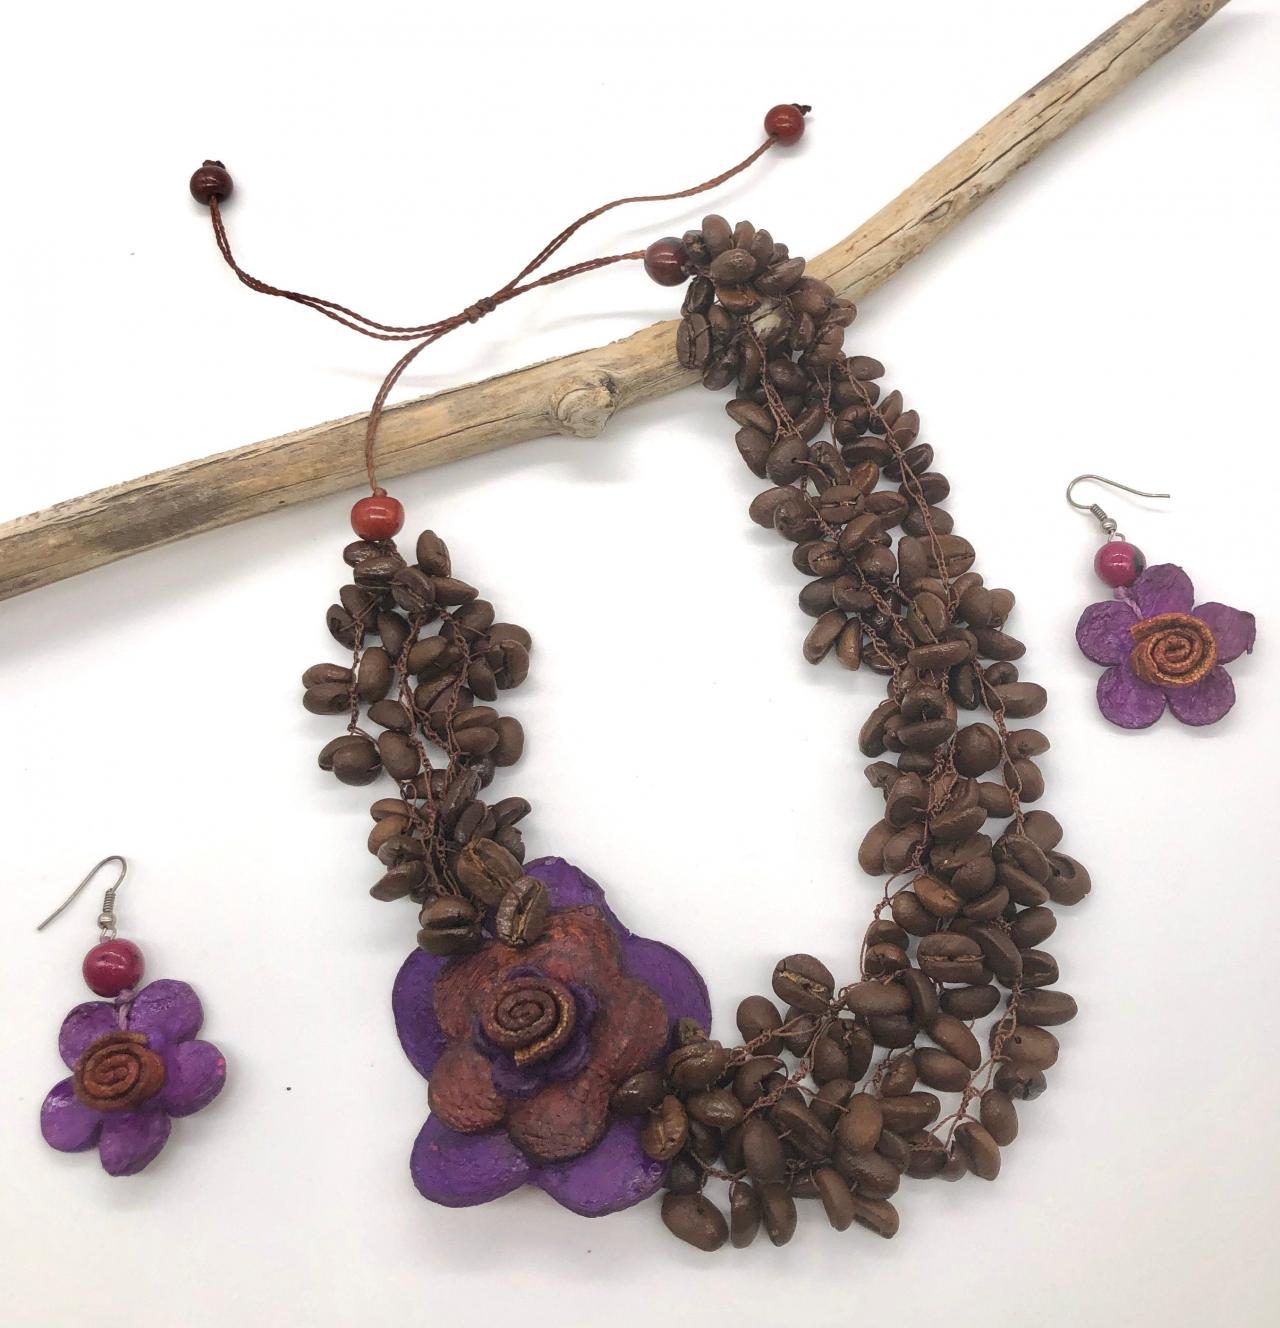 Purple Orange Peel Flower and Coffee Beans Necklace and Earrings, Statement Neck, Vegan Necklace, Strand Necklace, Handmade Necklace, Acai